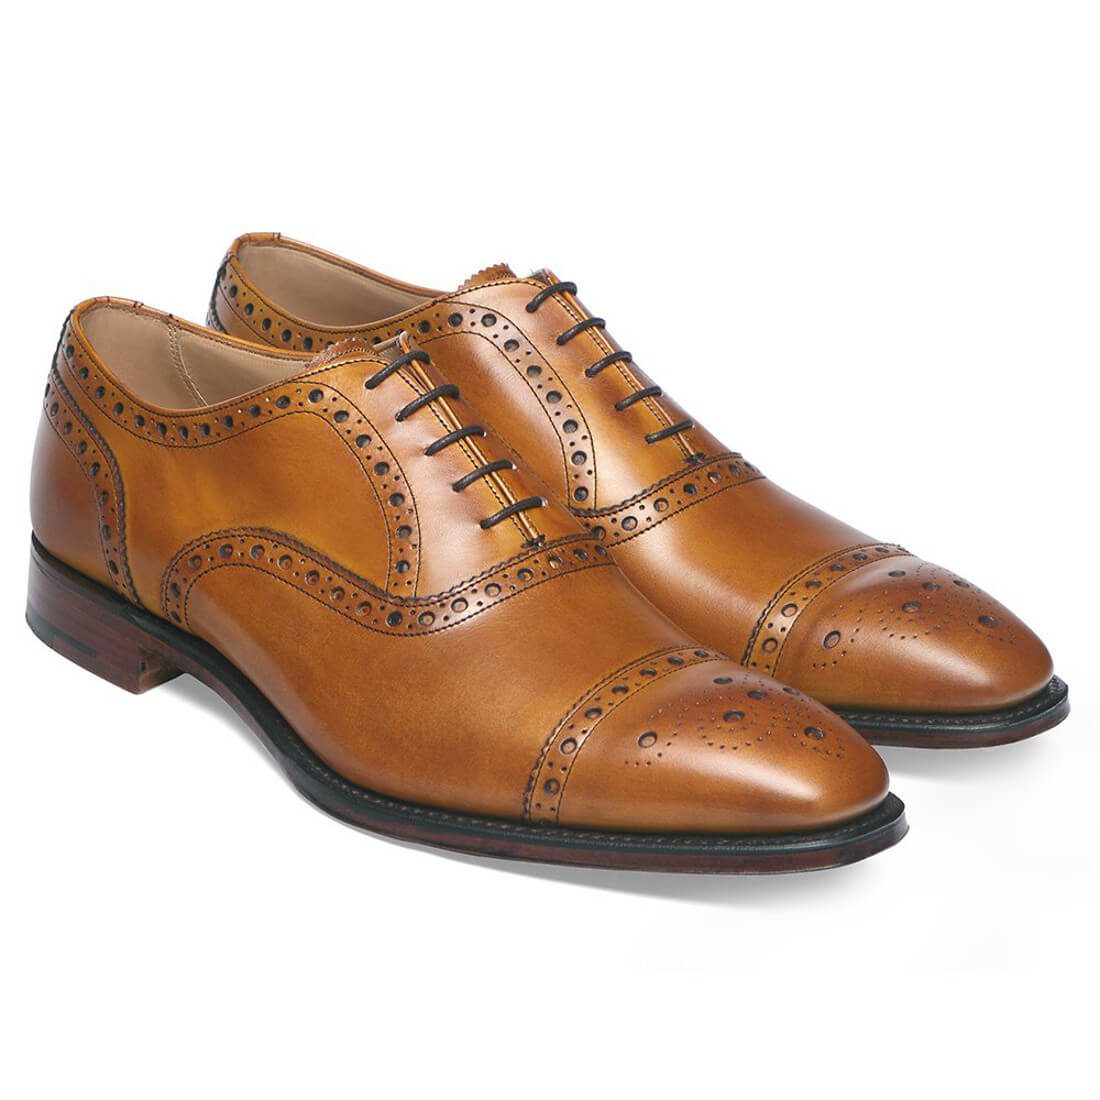 cheaney-maidstone-oxford-brogue-in-original-chestnut-calf-leather-p52-1354_zoom